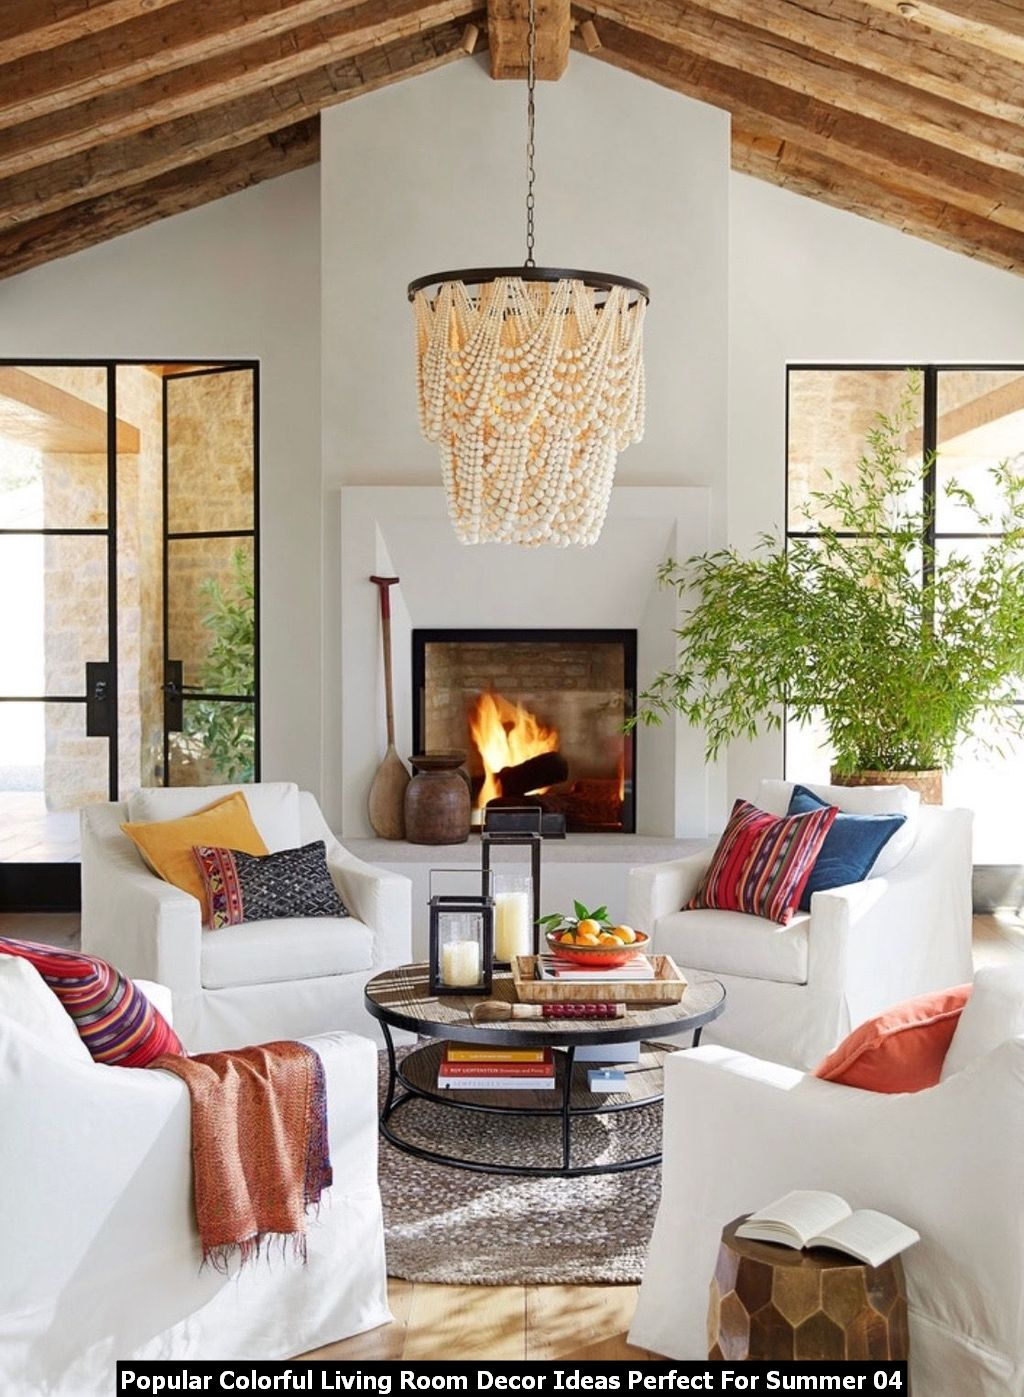 Popular Colorful Living Room Decor Ideas Perfect For Summer 04